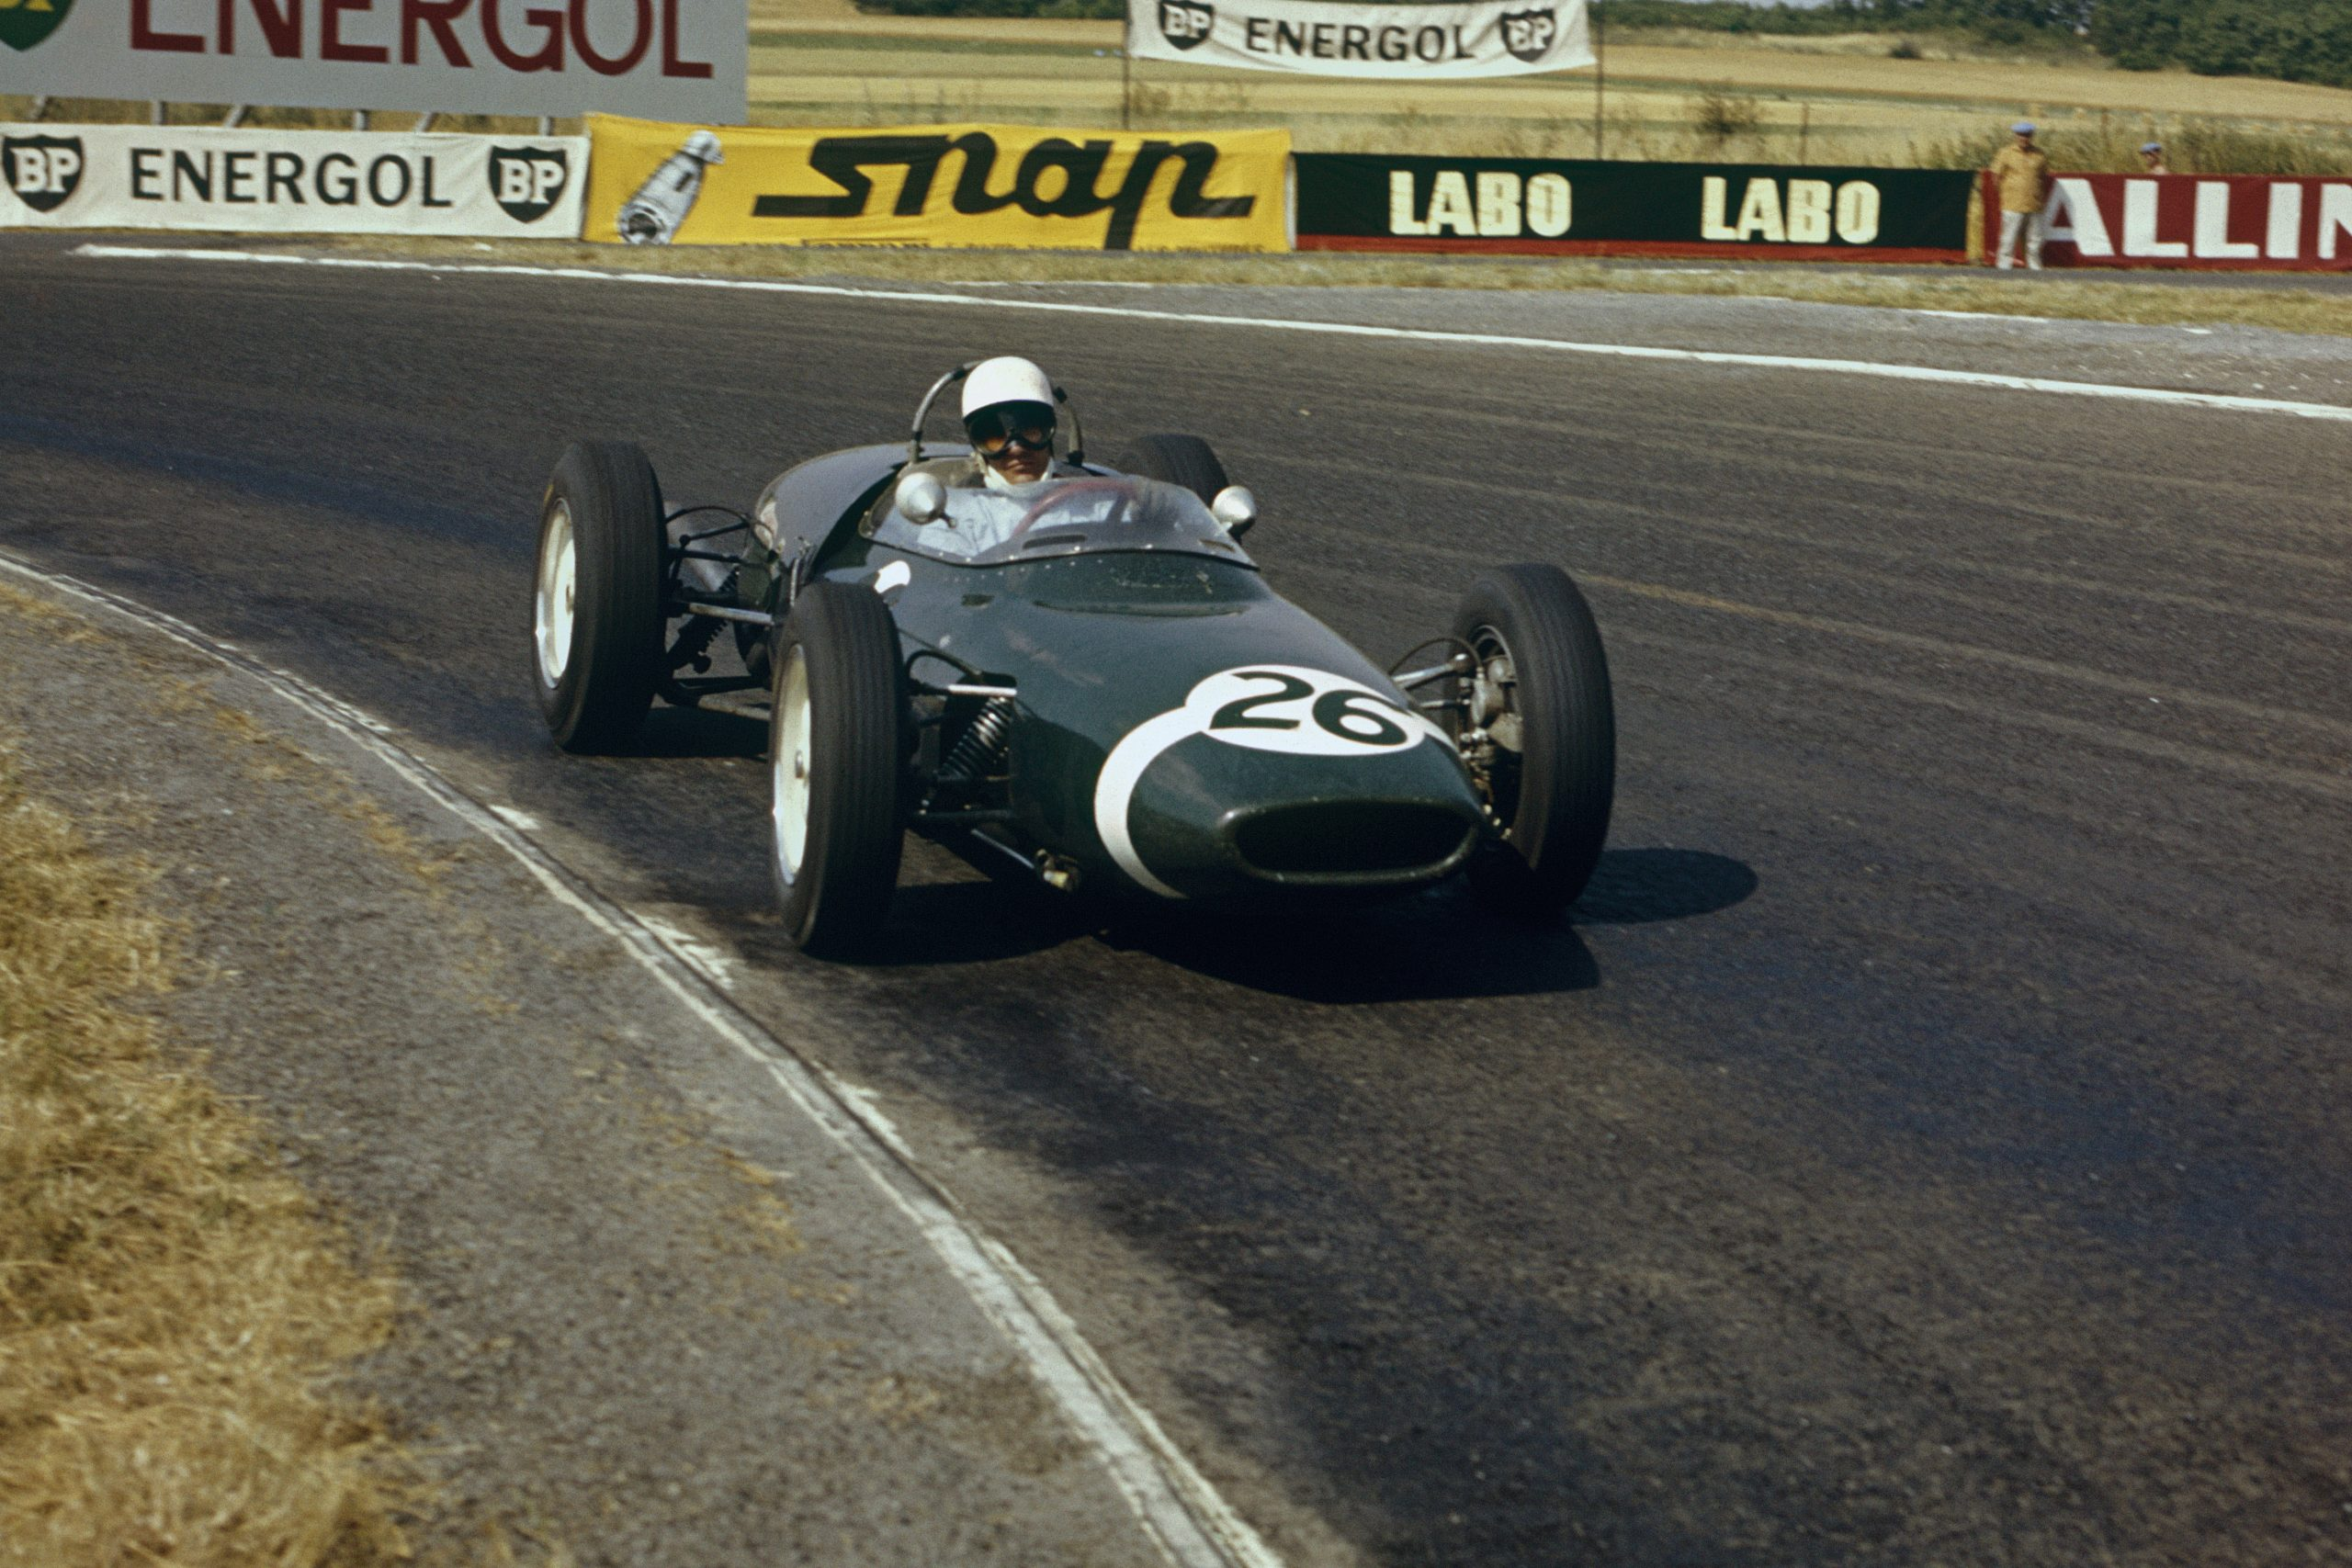 Stirling Moss in his Lotus 18/21 Climax, he later retired from the race.